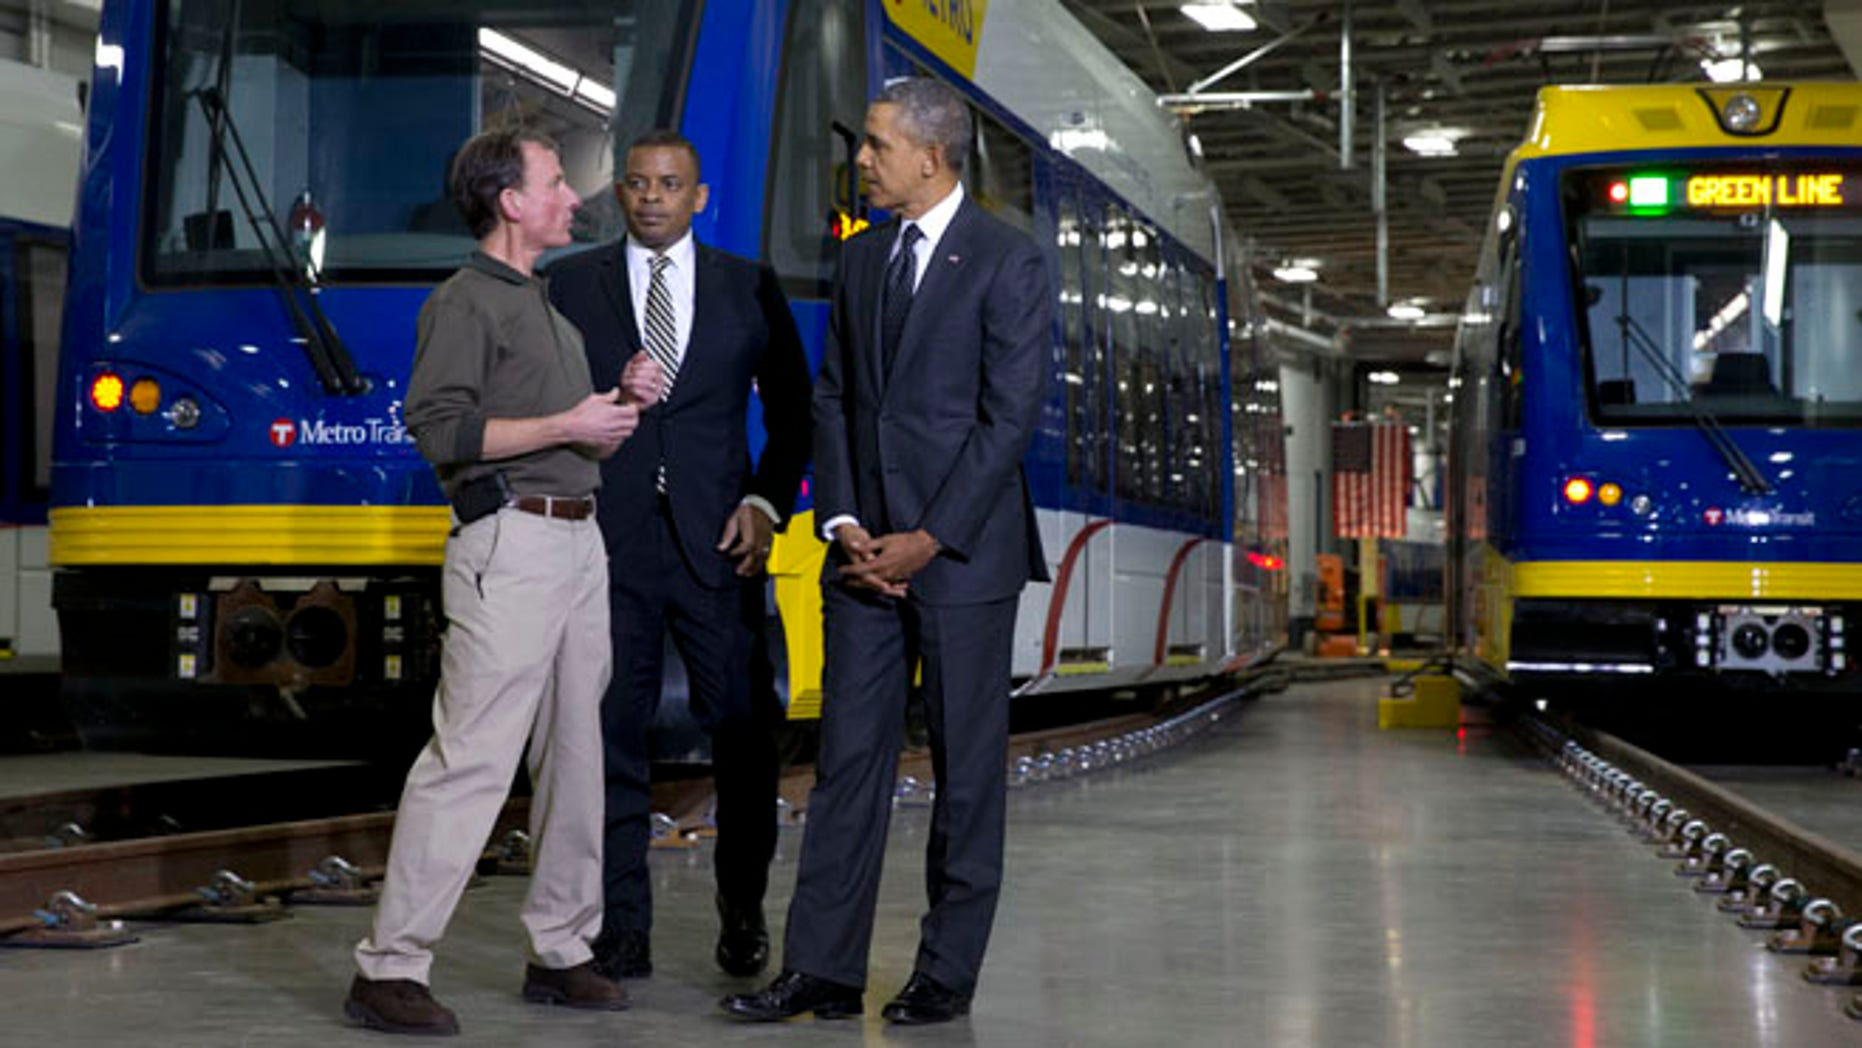 Feb. 26, 2014: Mark Fuhrmann, New Start Program Director of Metro Transit, left, talks with President Obama and Transportation Secretary Anthony Foxx, during a tour of the Metro Transit Light Rail Operations and Maintenance Facility in St. Paul, Minn.